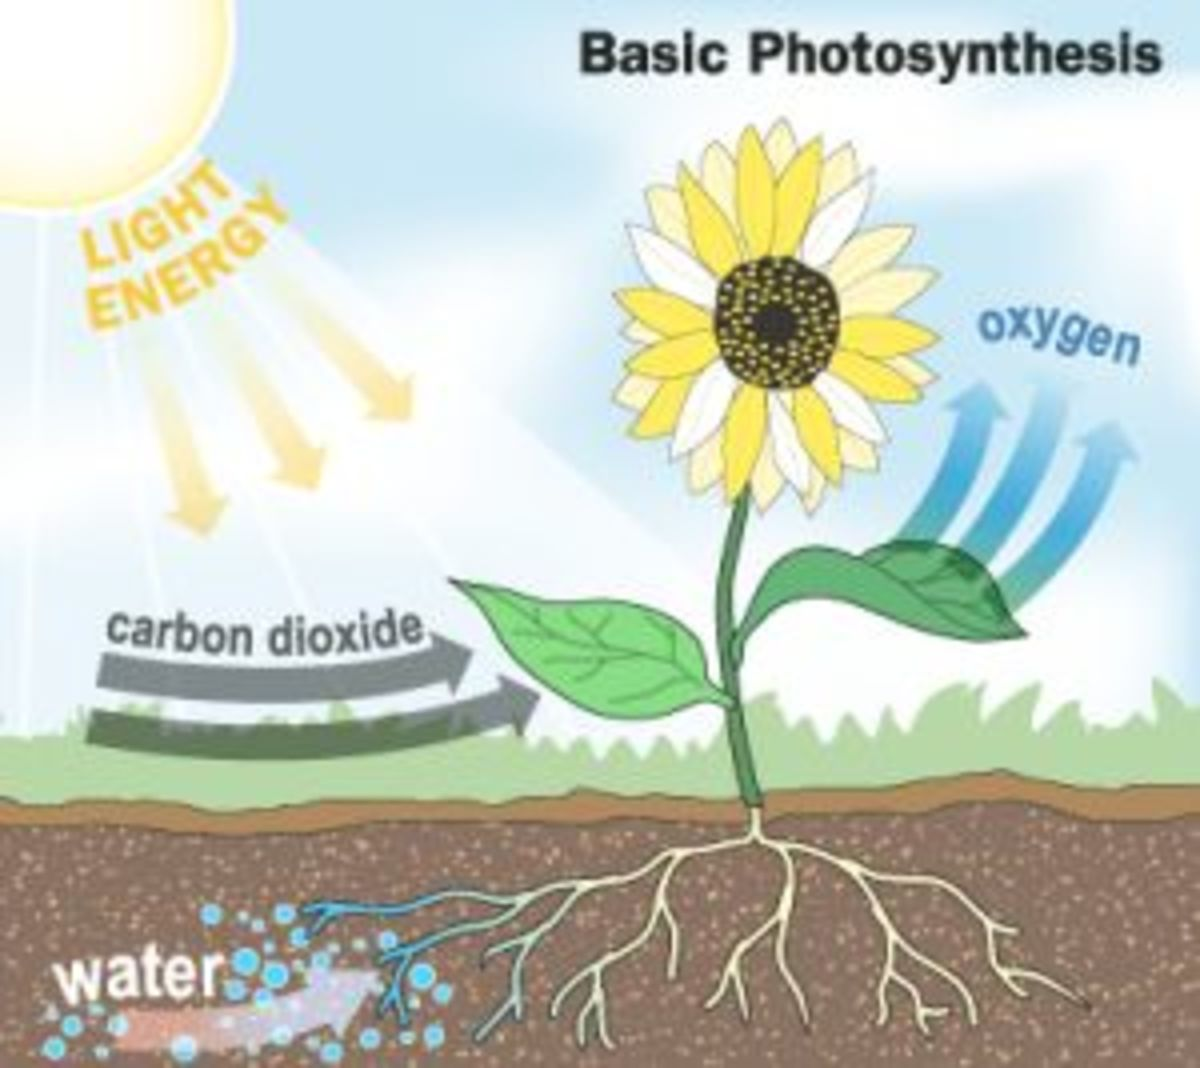 a simple diagram of photosynthesis